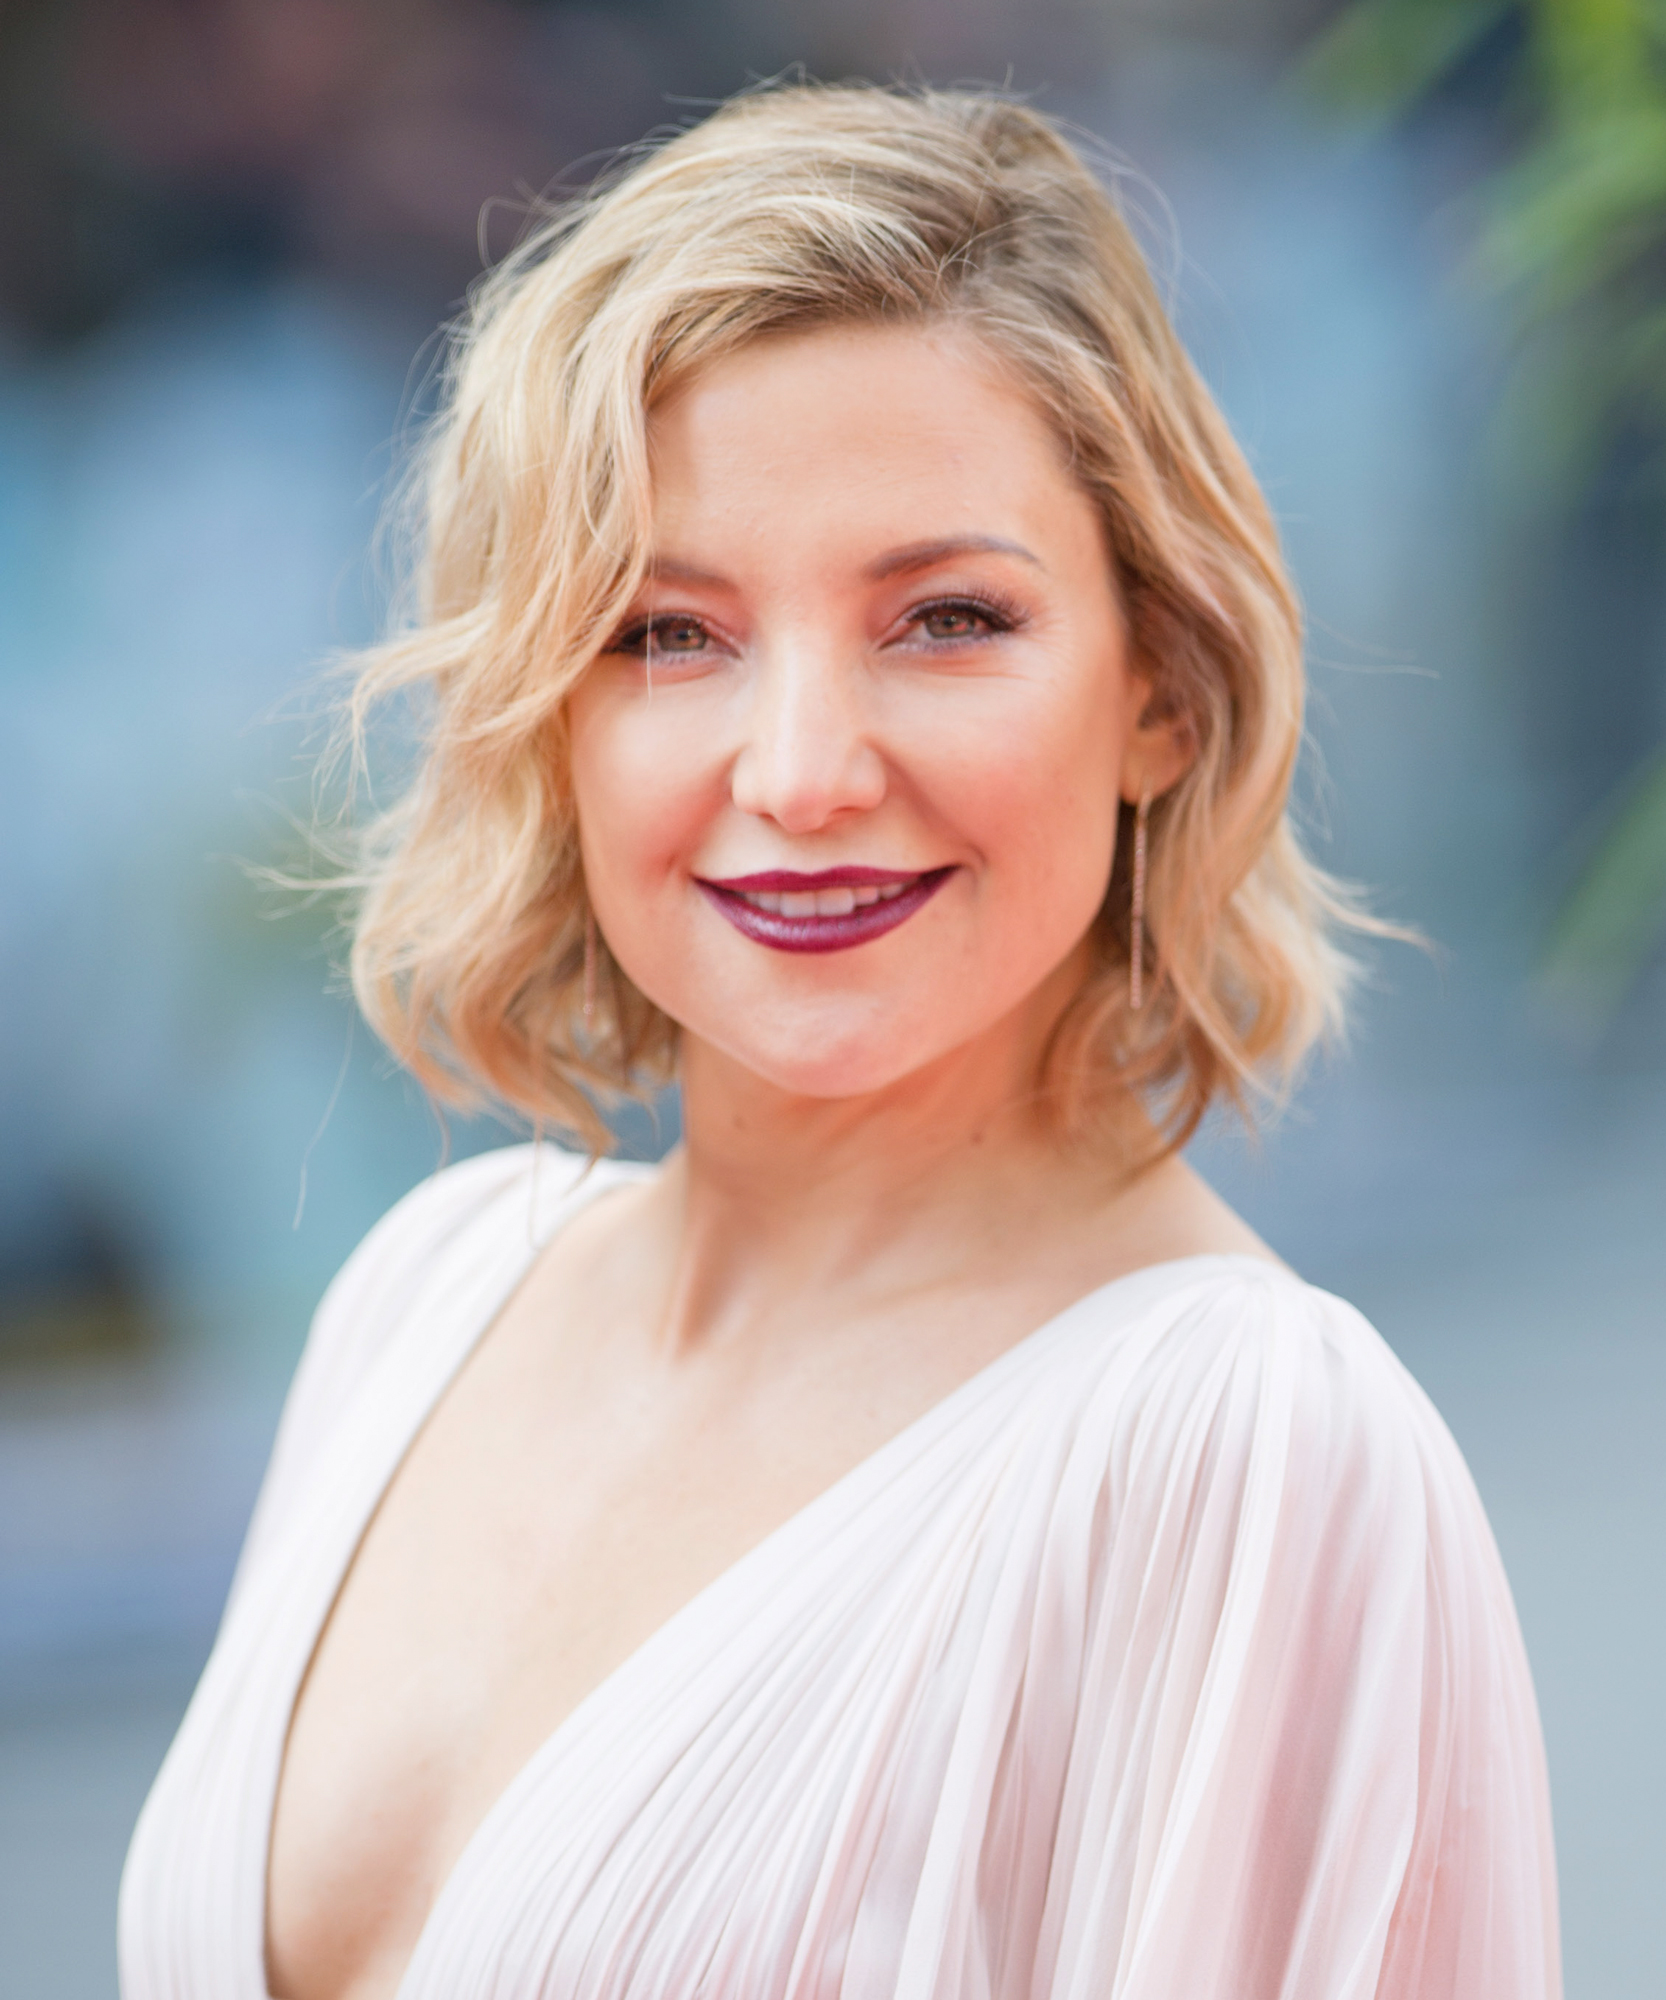 Kate Hudson Jokes That She Misses Zayn Malik in This Accidental Girl Band Photo